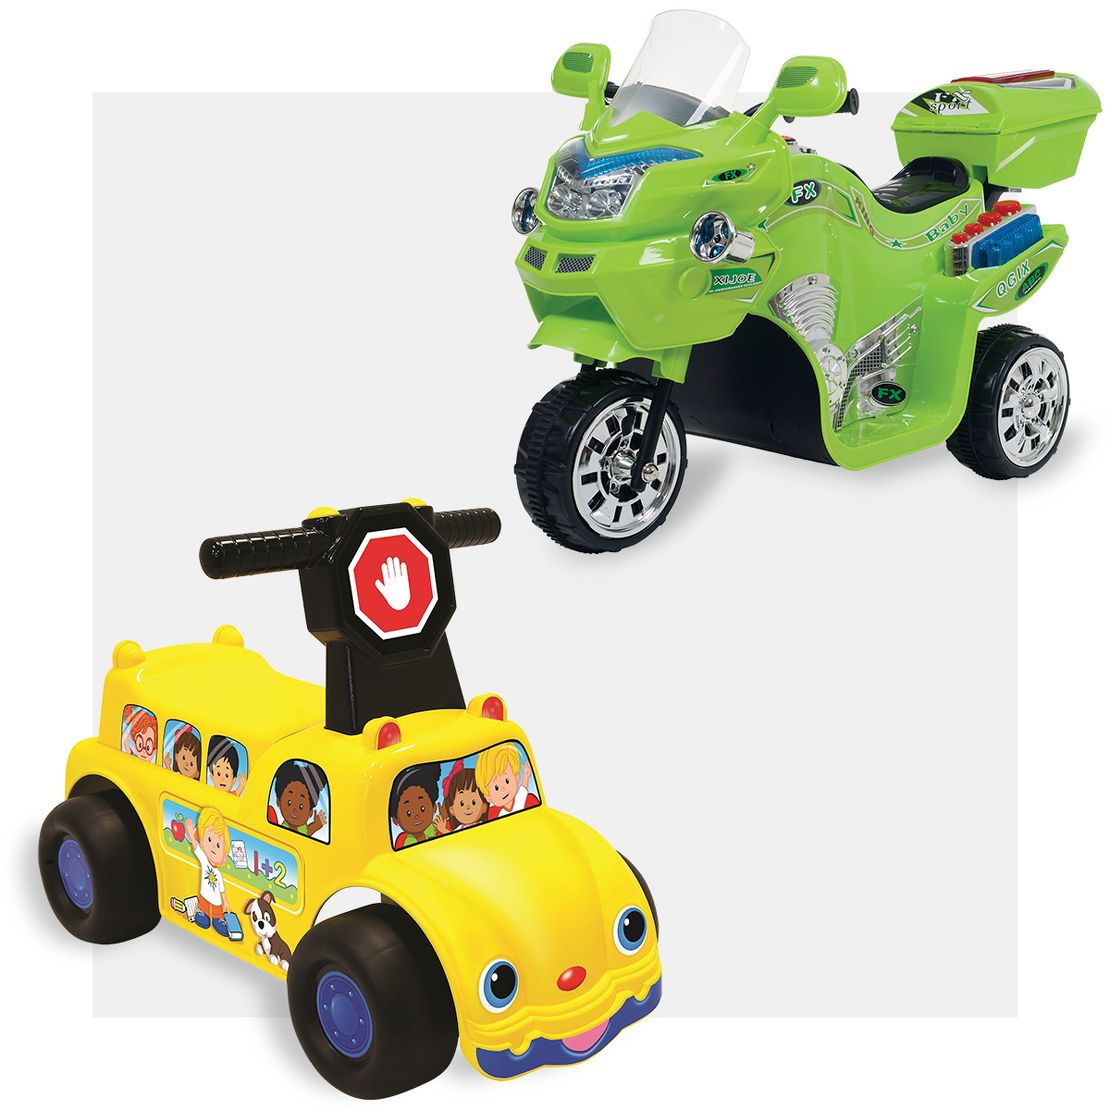 Toys From Target : Riding toys target